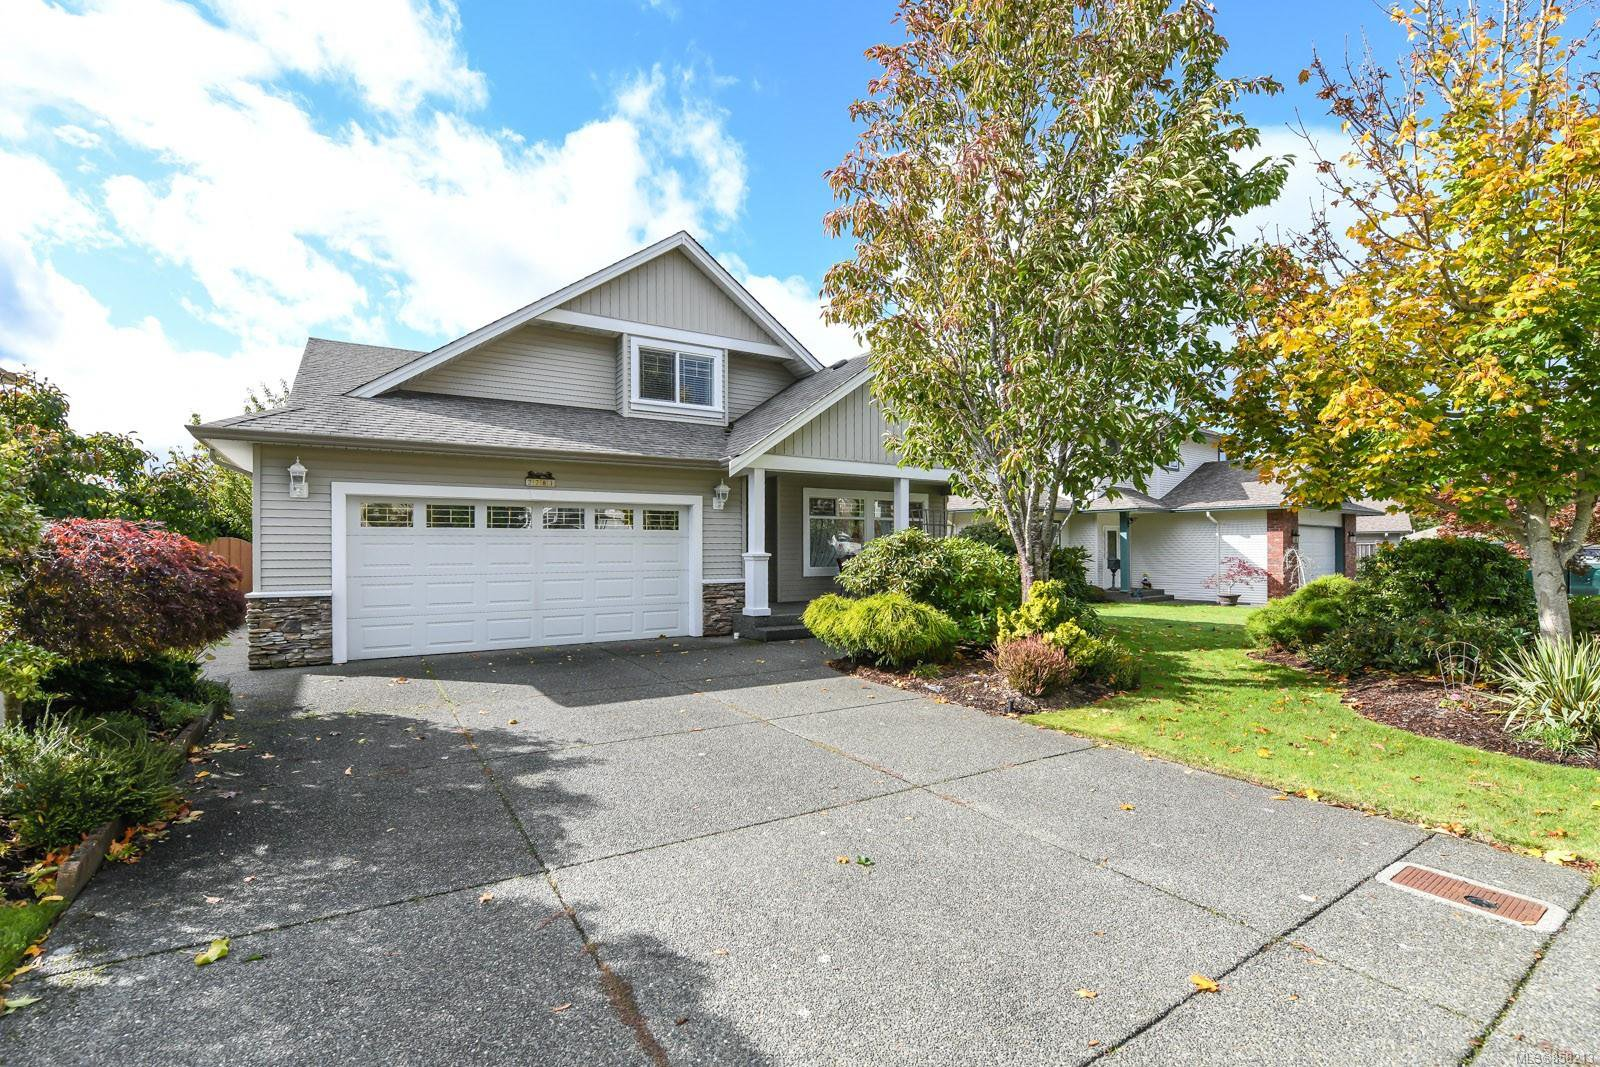 Main Photo: 2281 Stirling Cres in : CV Courtenay East House for sale (Comox Valley)  : MLS®# 858213